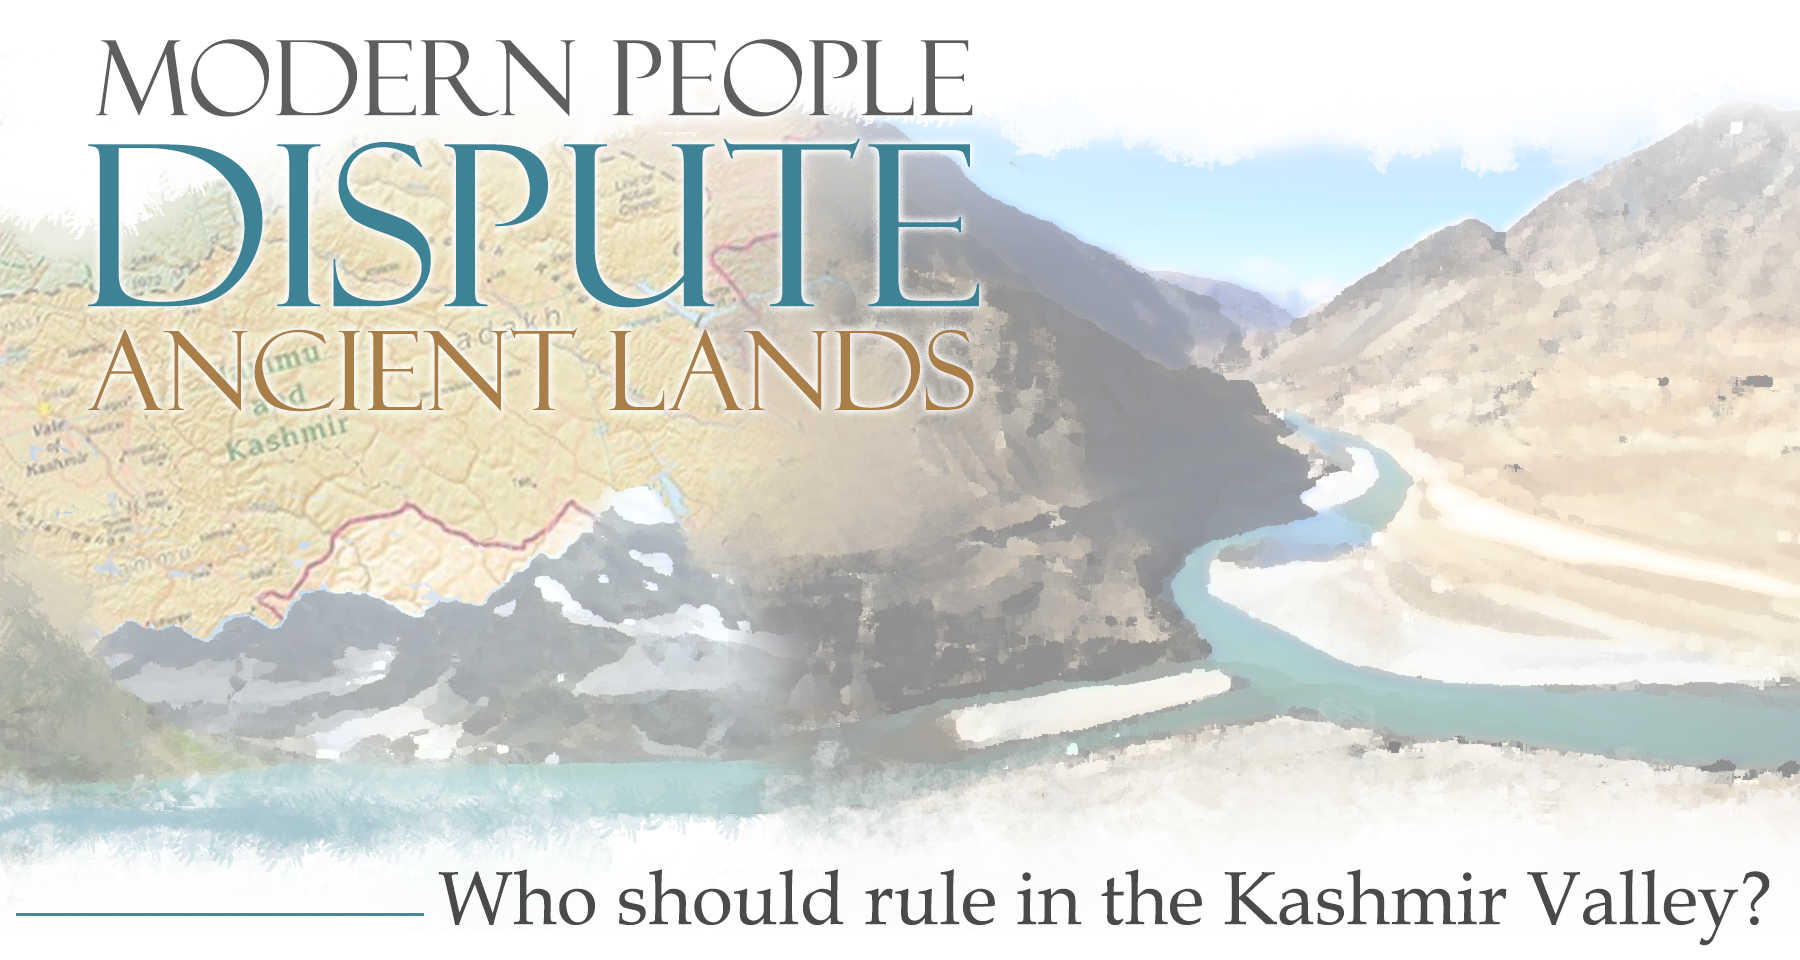 Modern People Dispute Ancient Lands: Who should rule in the Kashmir Valley?